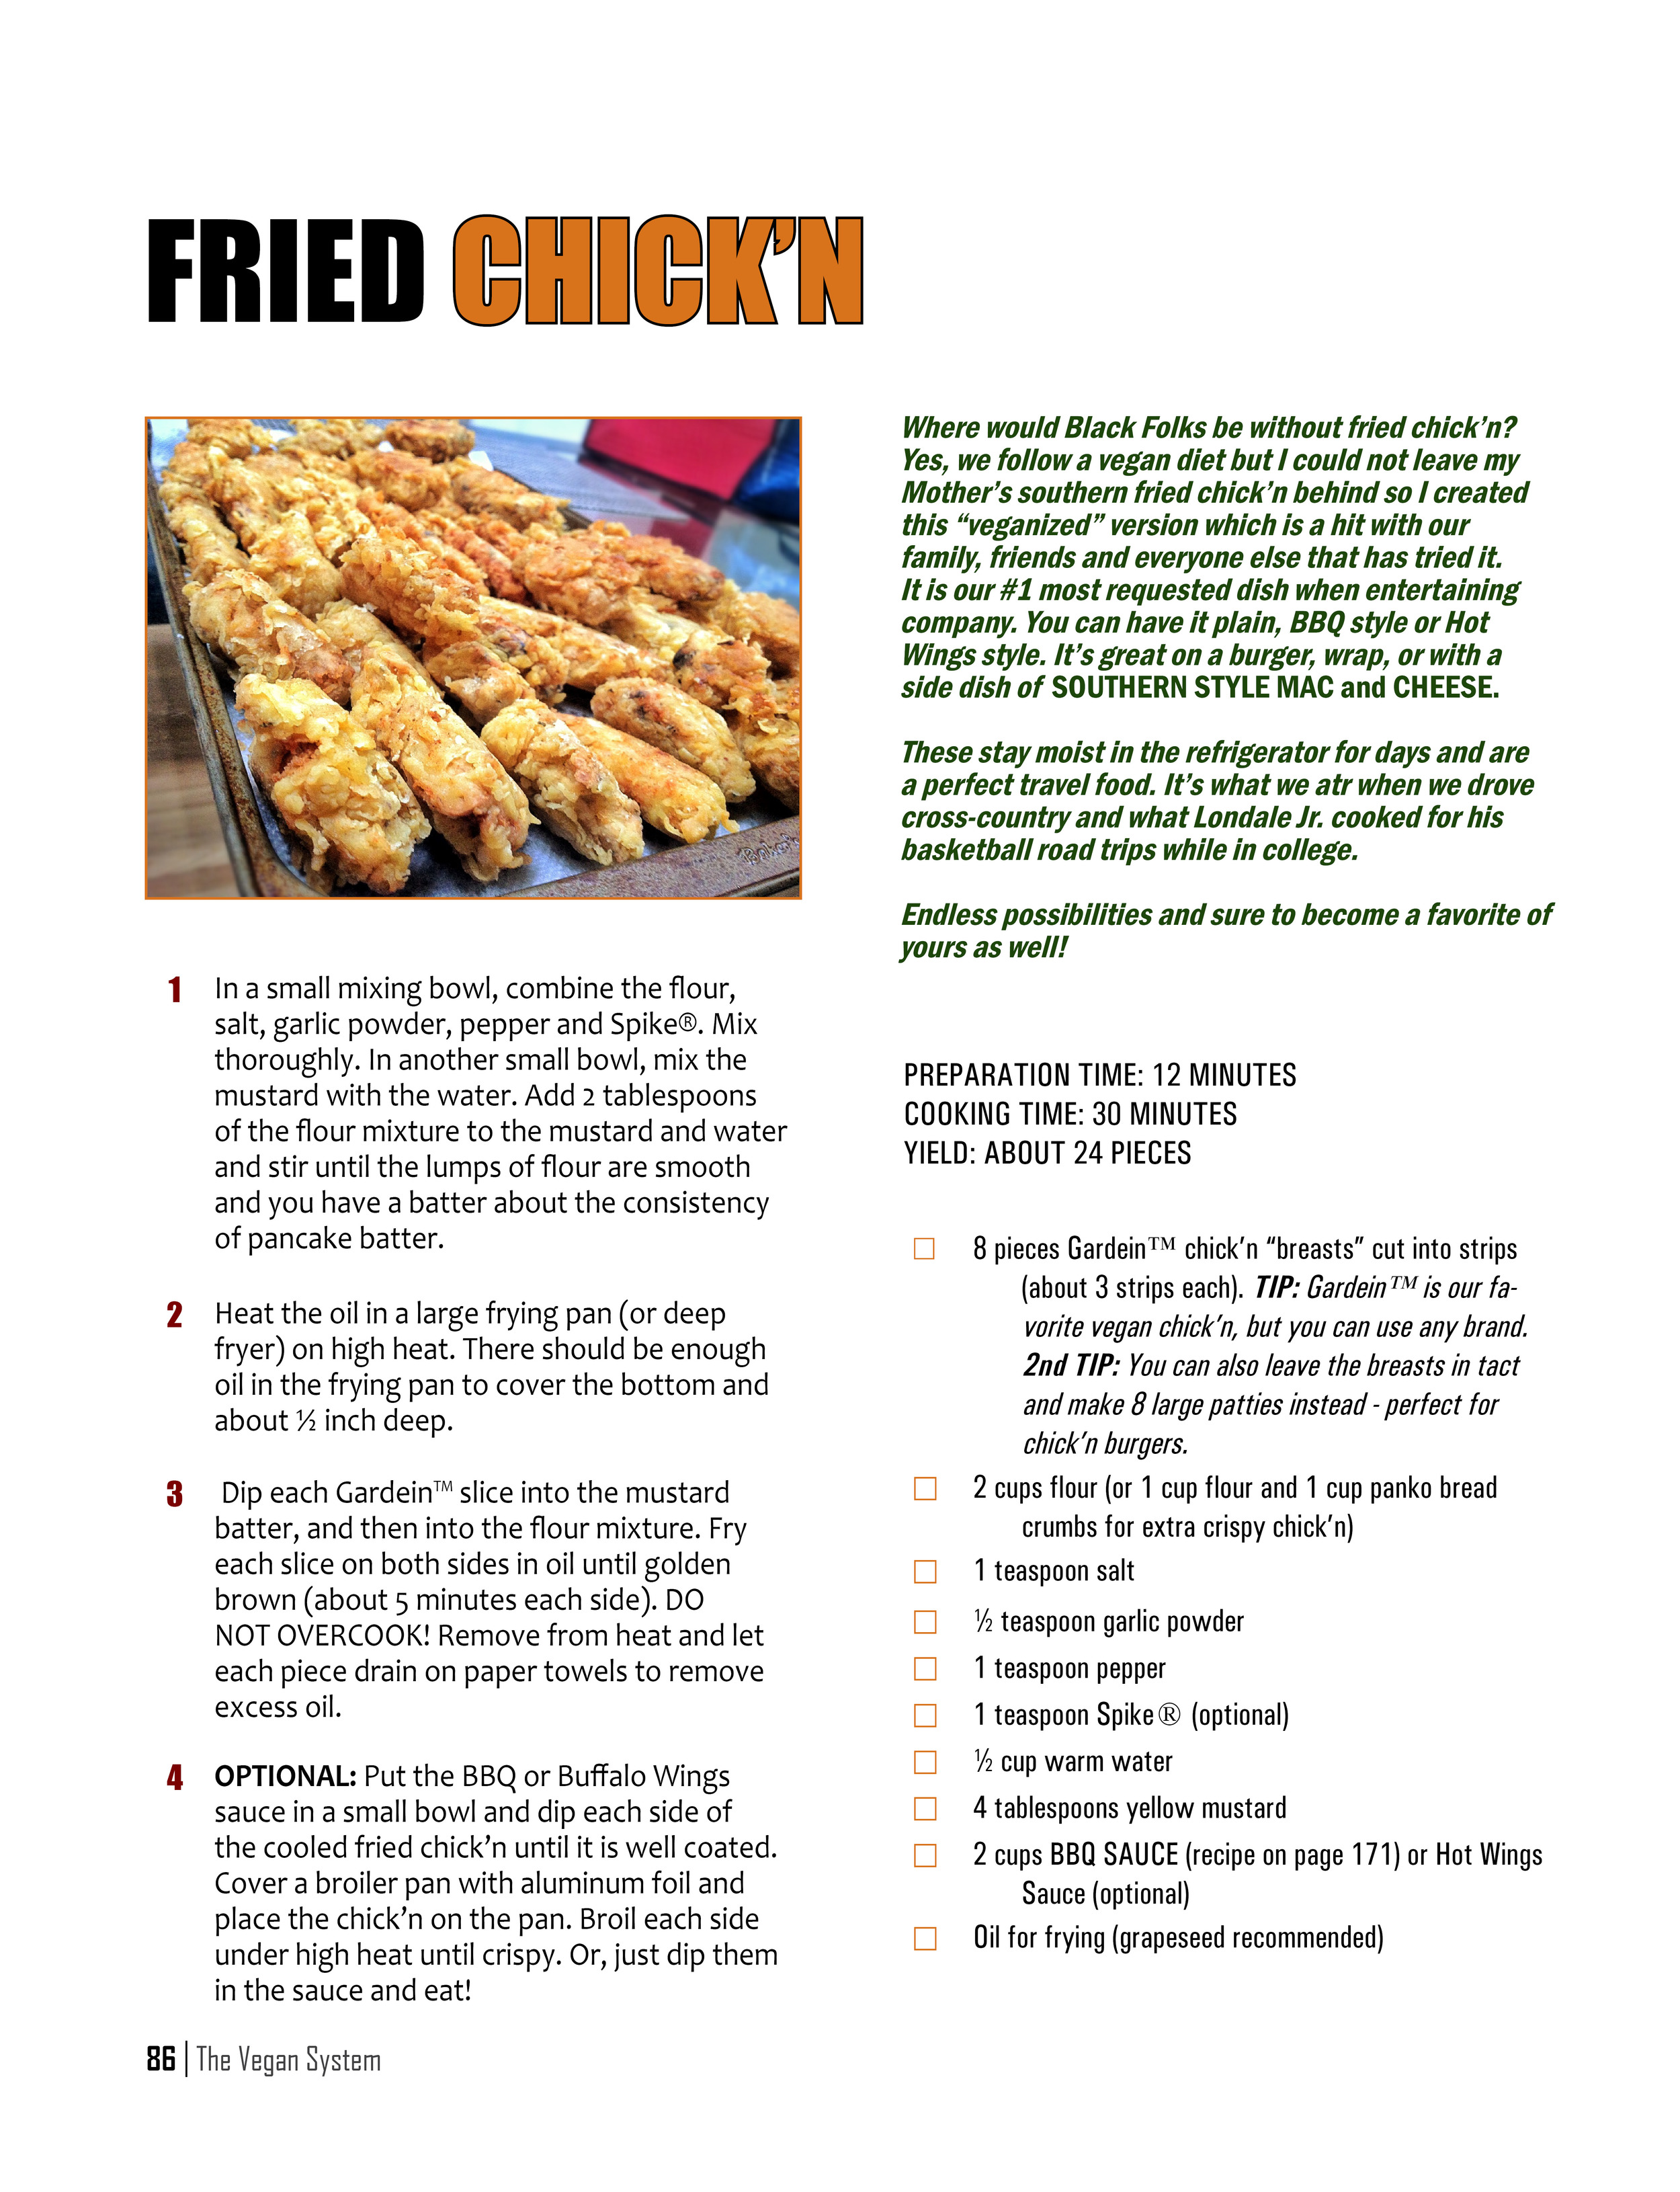 Fried Chick Recipe.jpg